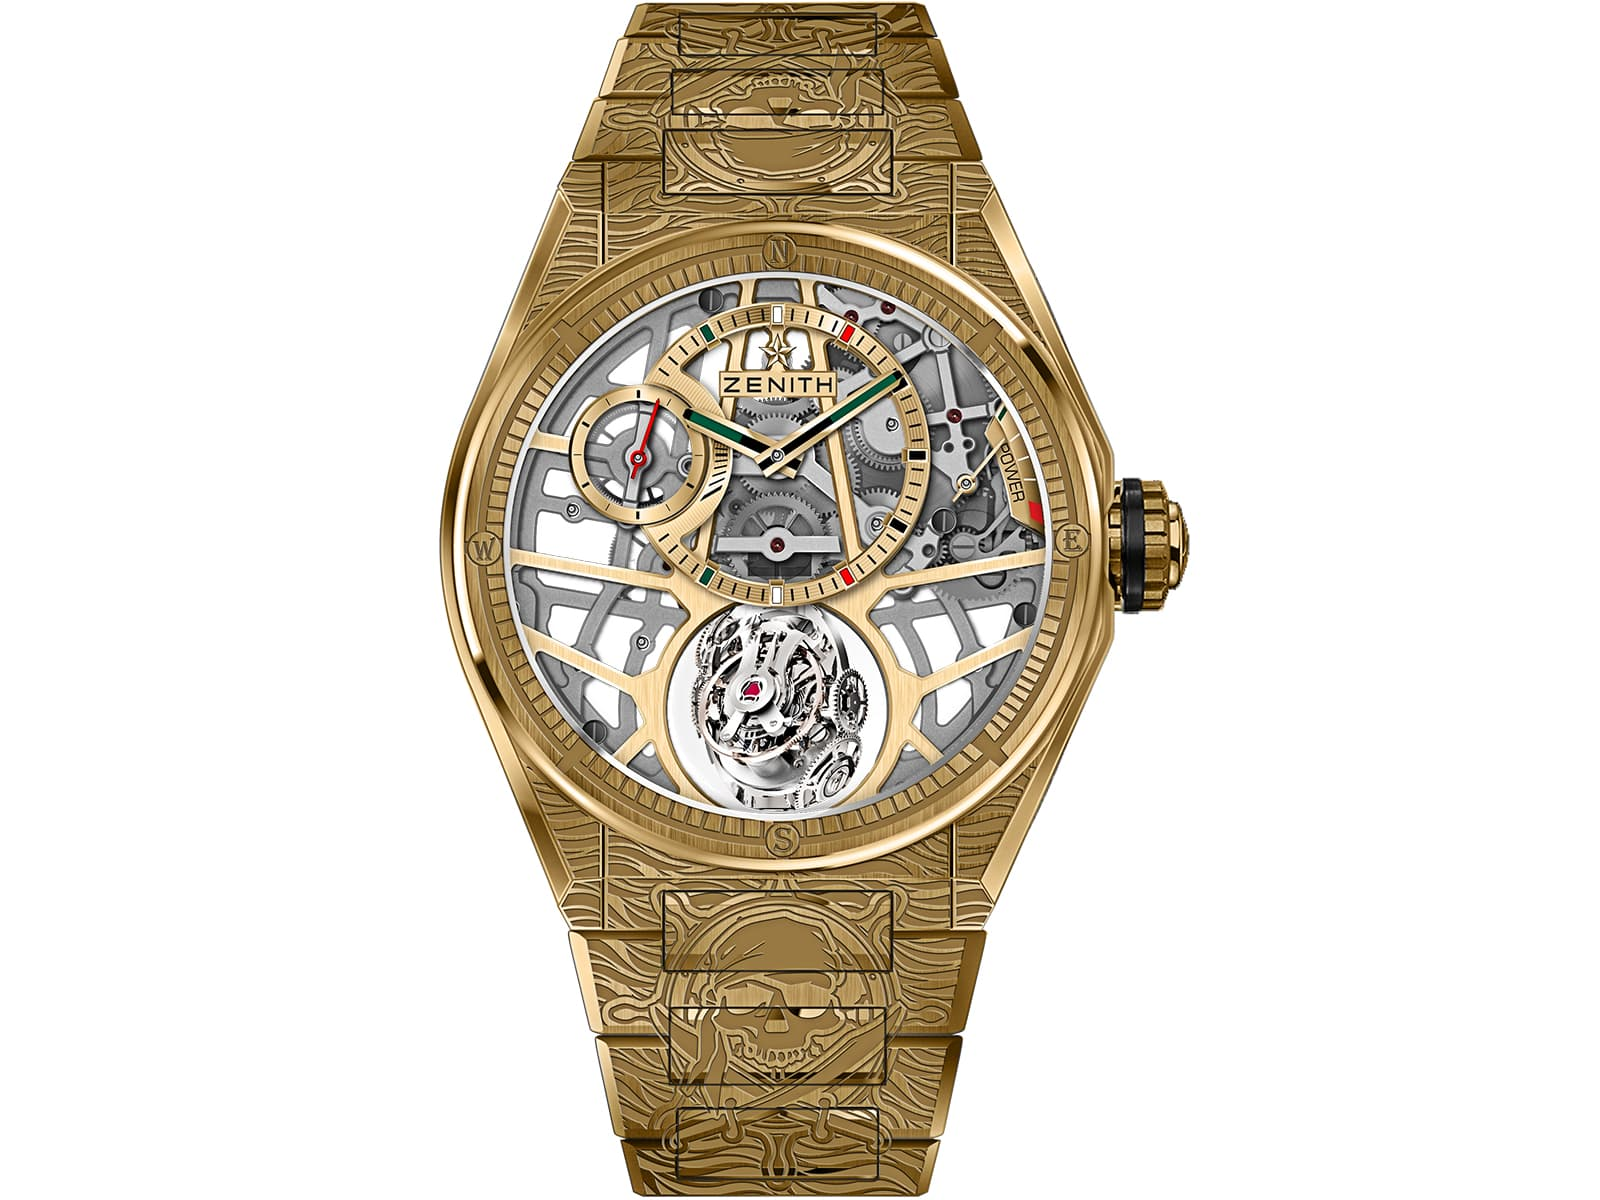 30-9002-8812-75-m9002-zenith-defy-zero-g-pirates-edition-yellow-gold-.jpg